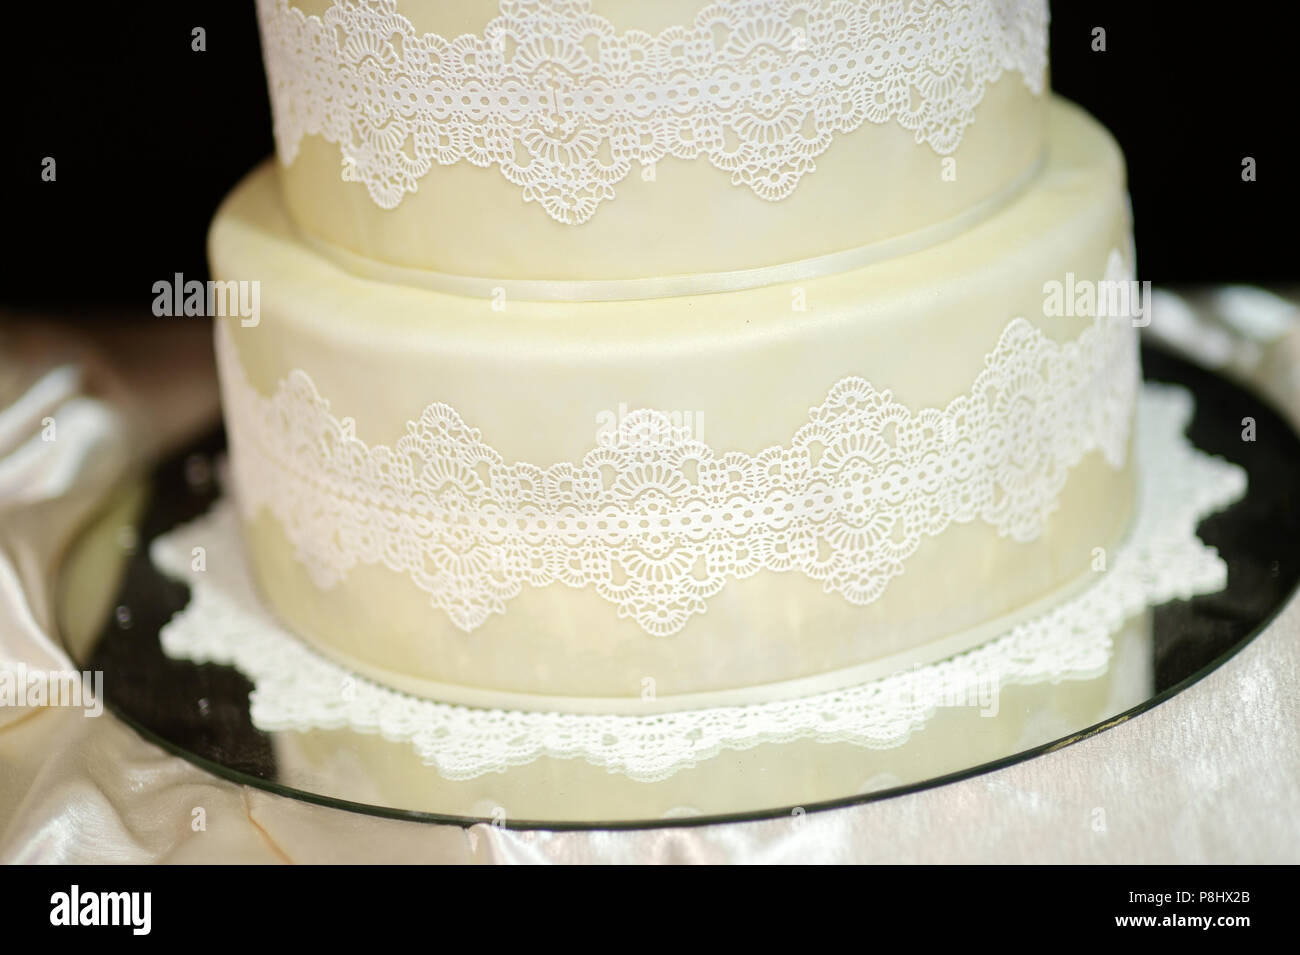 White Wedding Cake Decorated With White Lace And Flowers Stock Photo